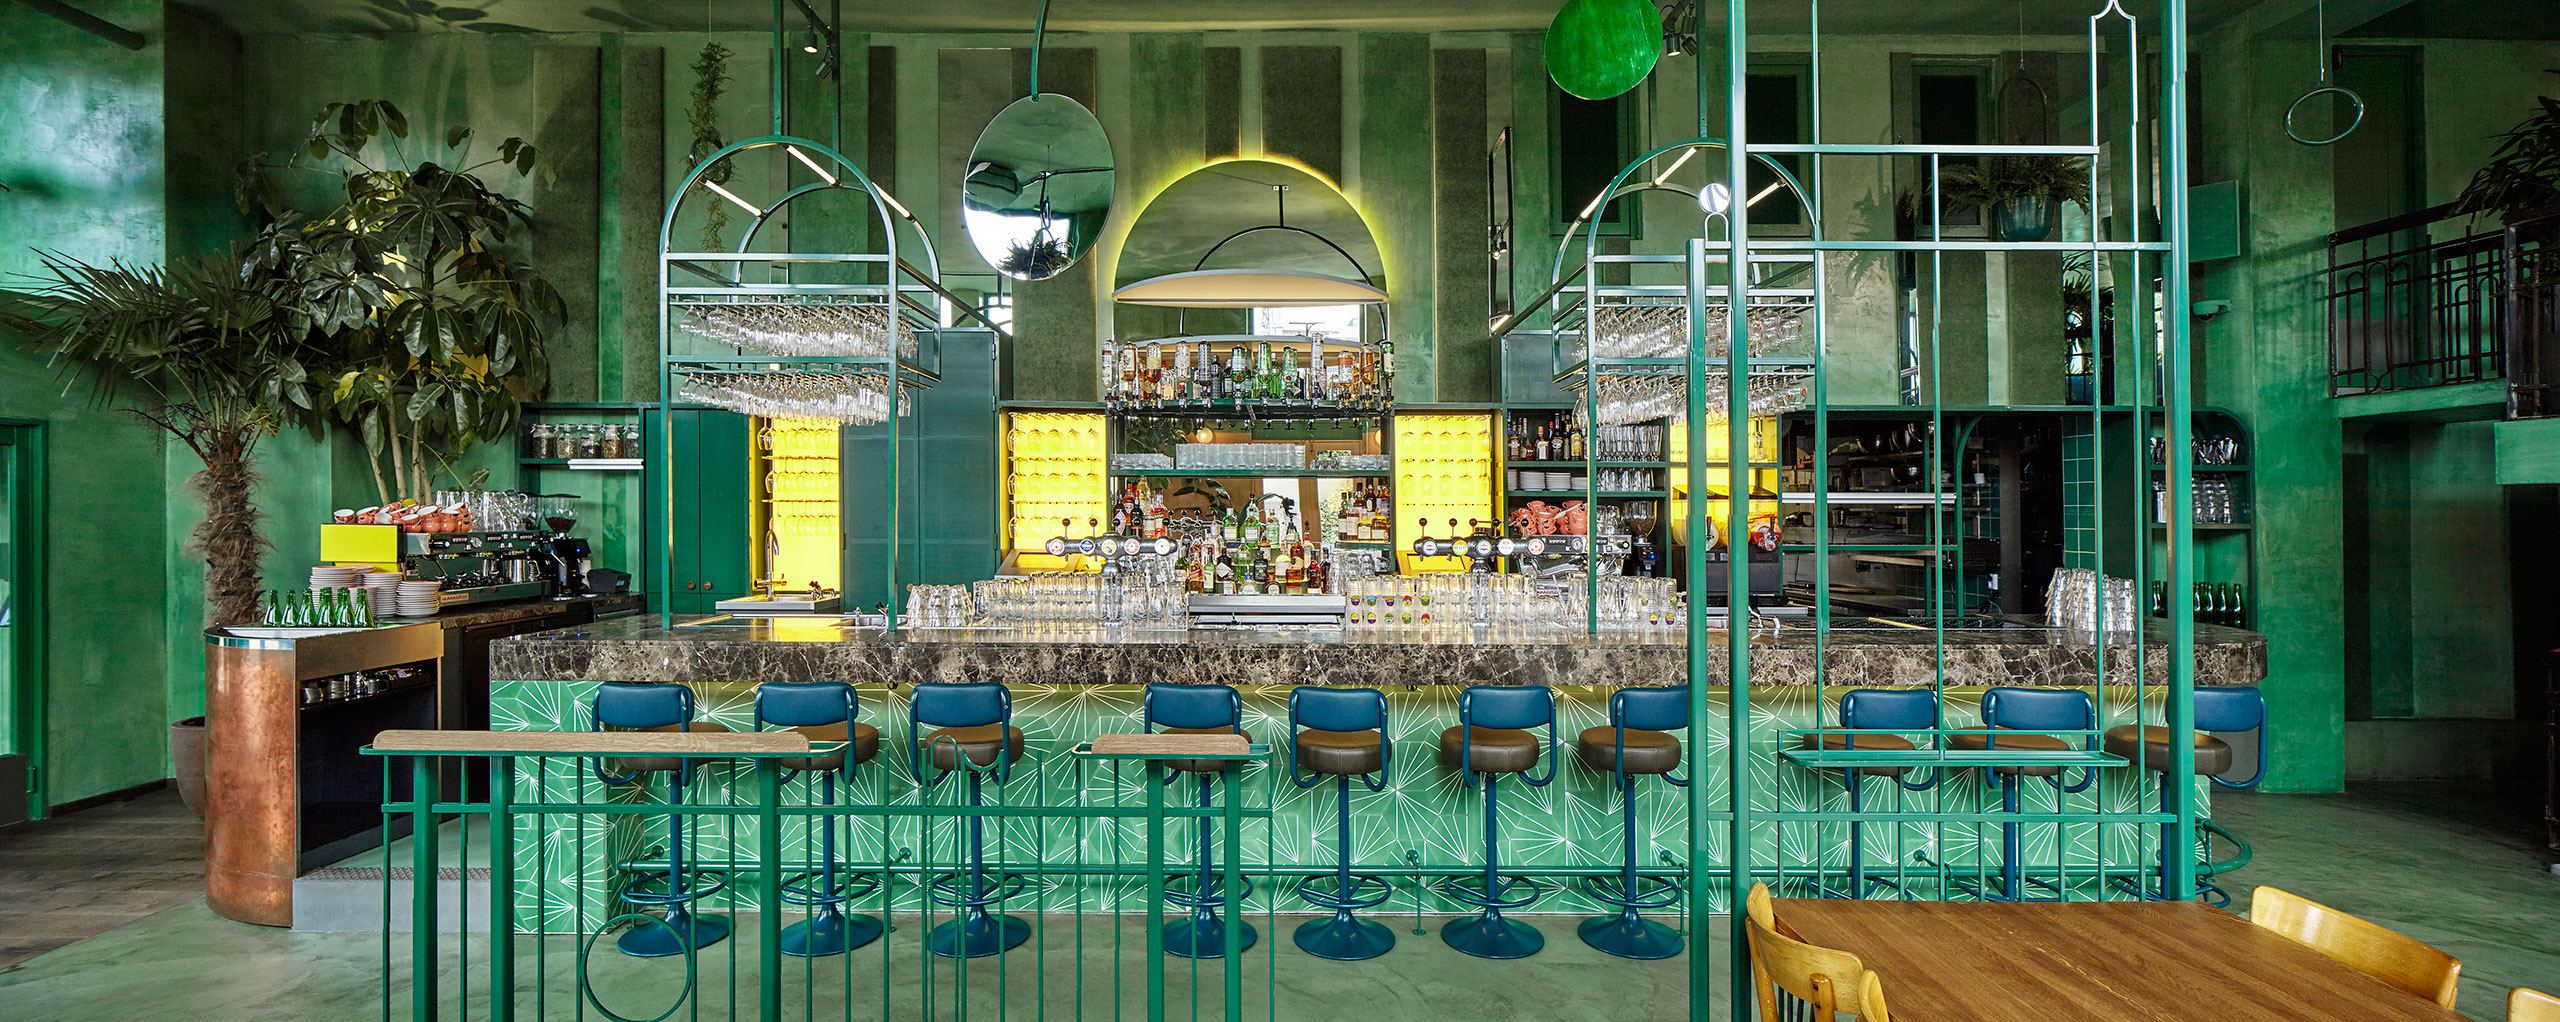 Bar Botanique - Amsterdam's tropical rainforest